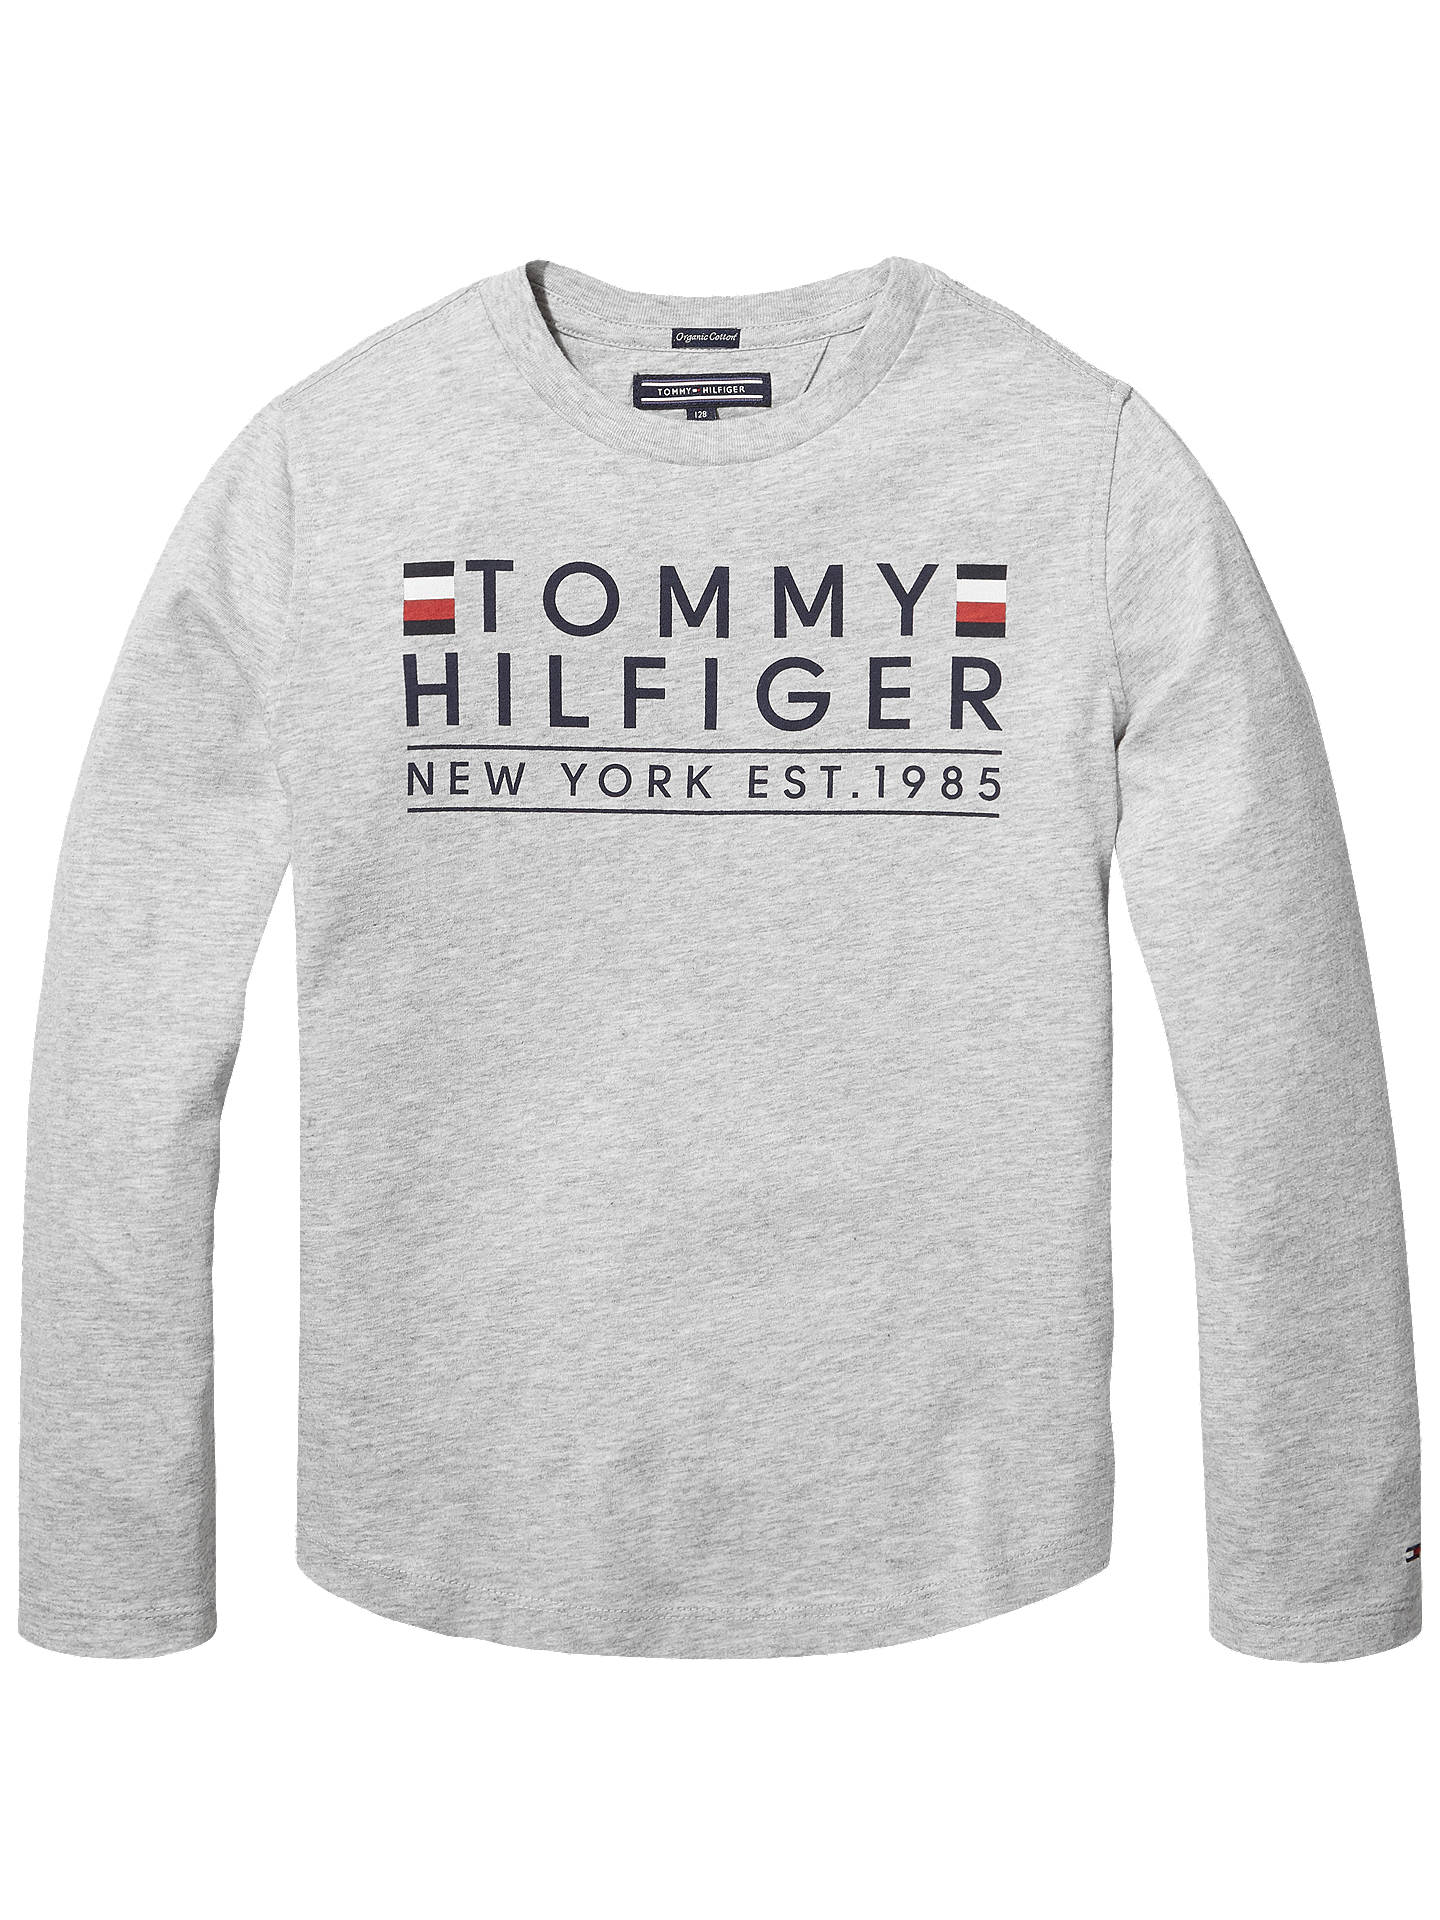 308ce288 Buy Tommy Hilfiger Boys' Graphic Print T-Shirt, Grey, 8 years Online ...